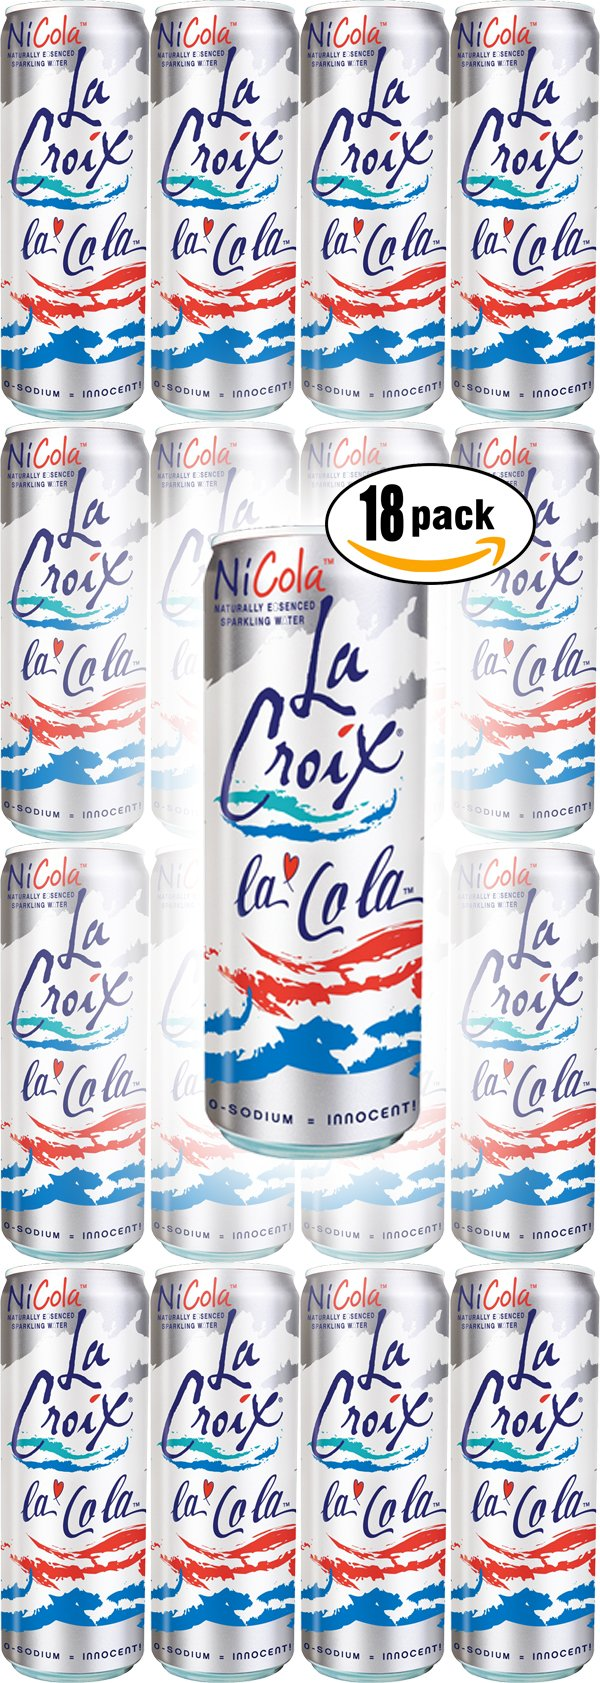 La Croix La Cola Naturally Essenced Flavored Sparkling Water, 12oz Can (Pack of 18, Total of 216 Oz) by La Croix